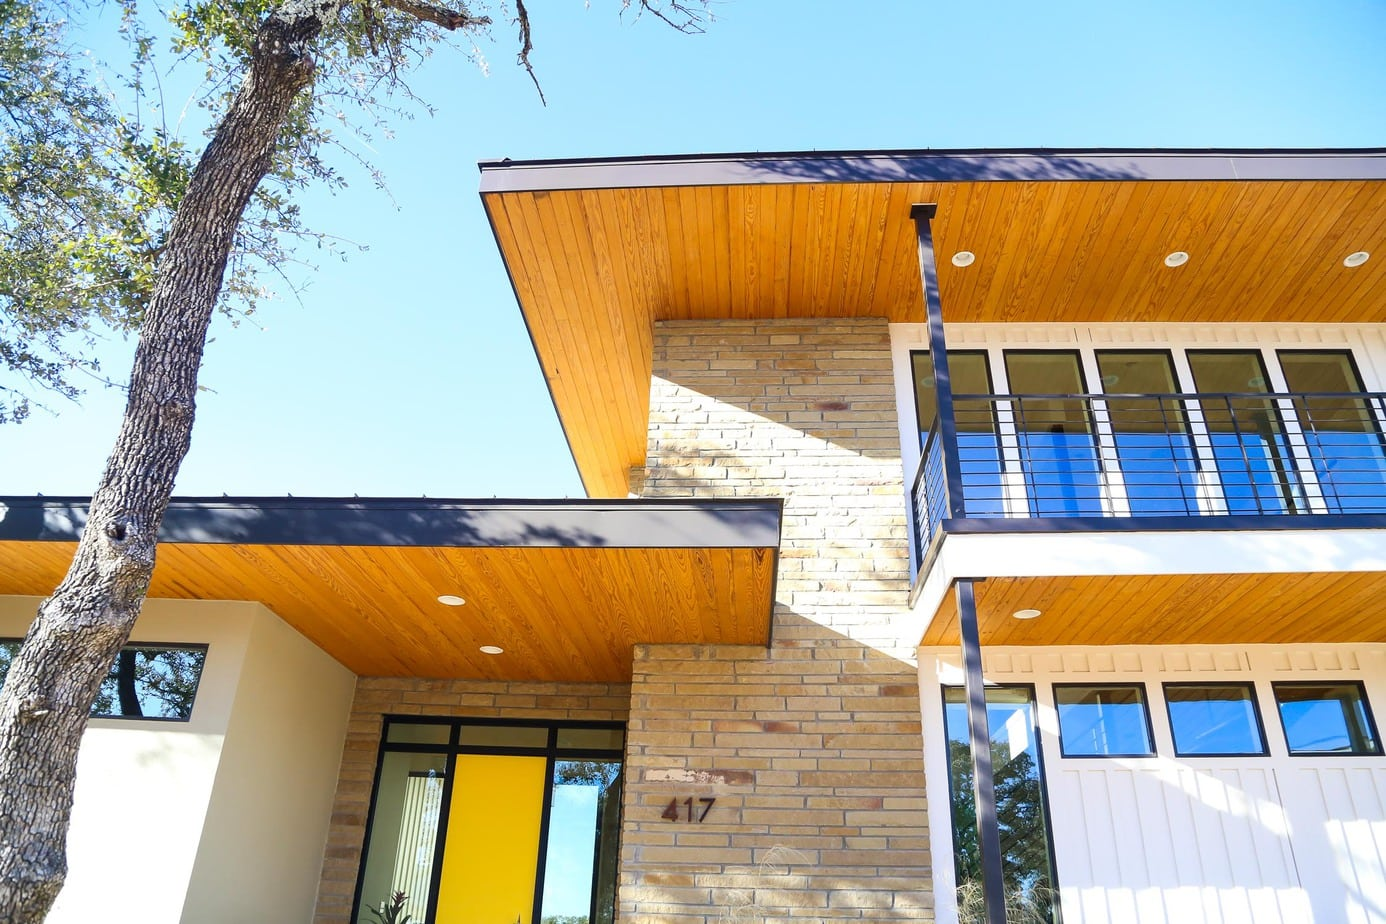 Exterior of mid-century modern home in Starlight Village